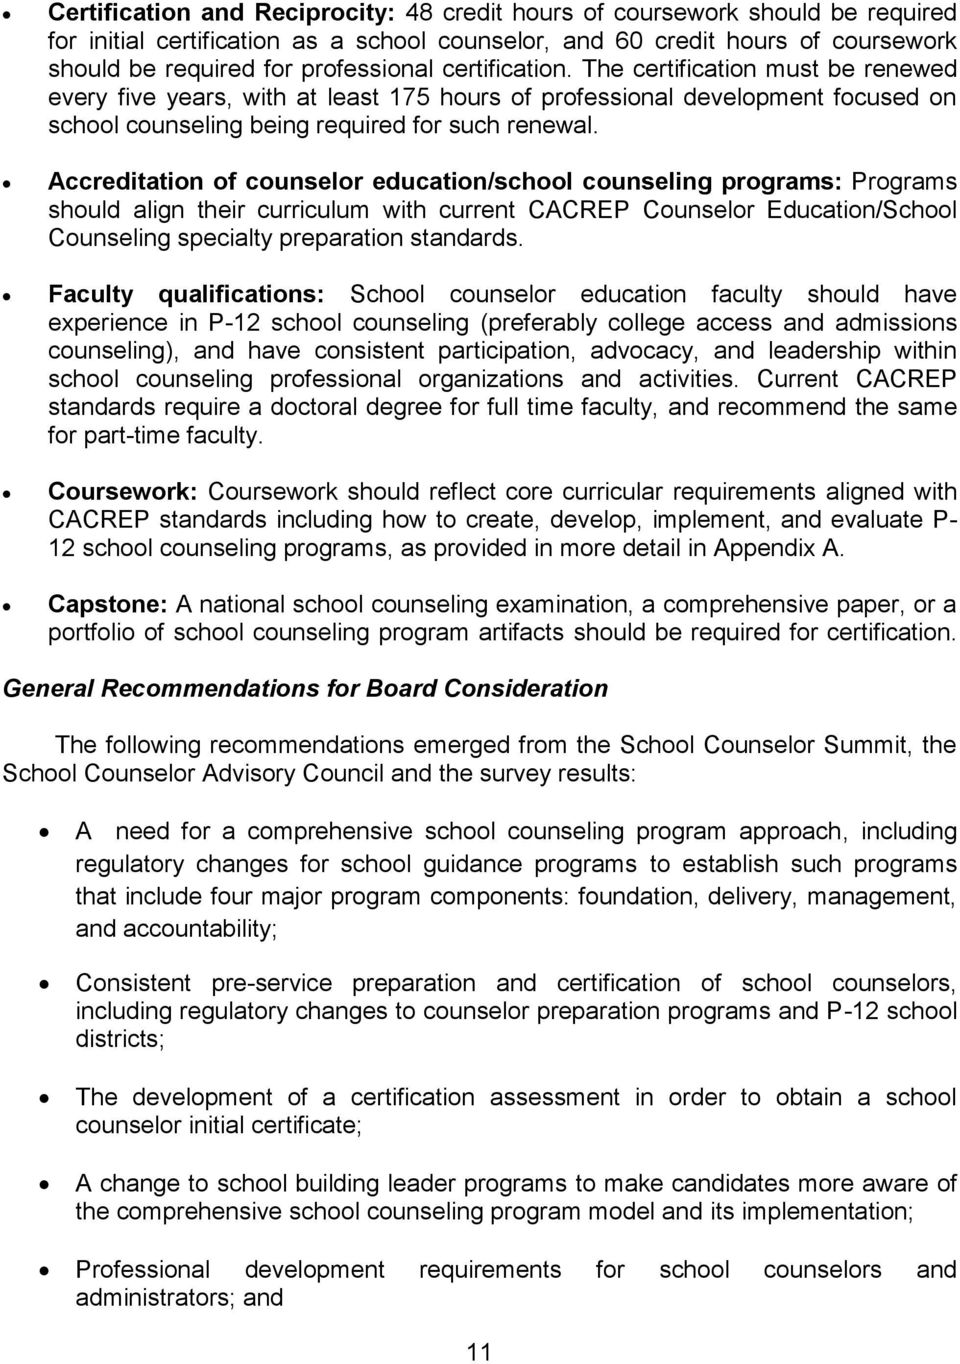 Accreditation of counselor education/school counseling programs: Programs should align their curriculum with current CACREP Counselor Education/School Counseling specialty preparation standards.